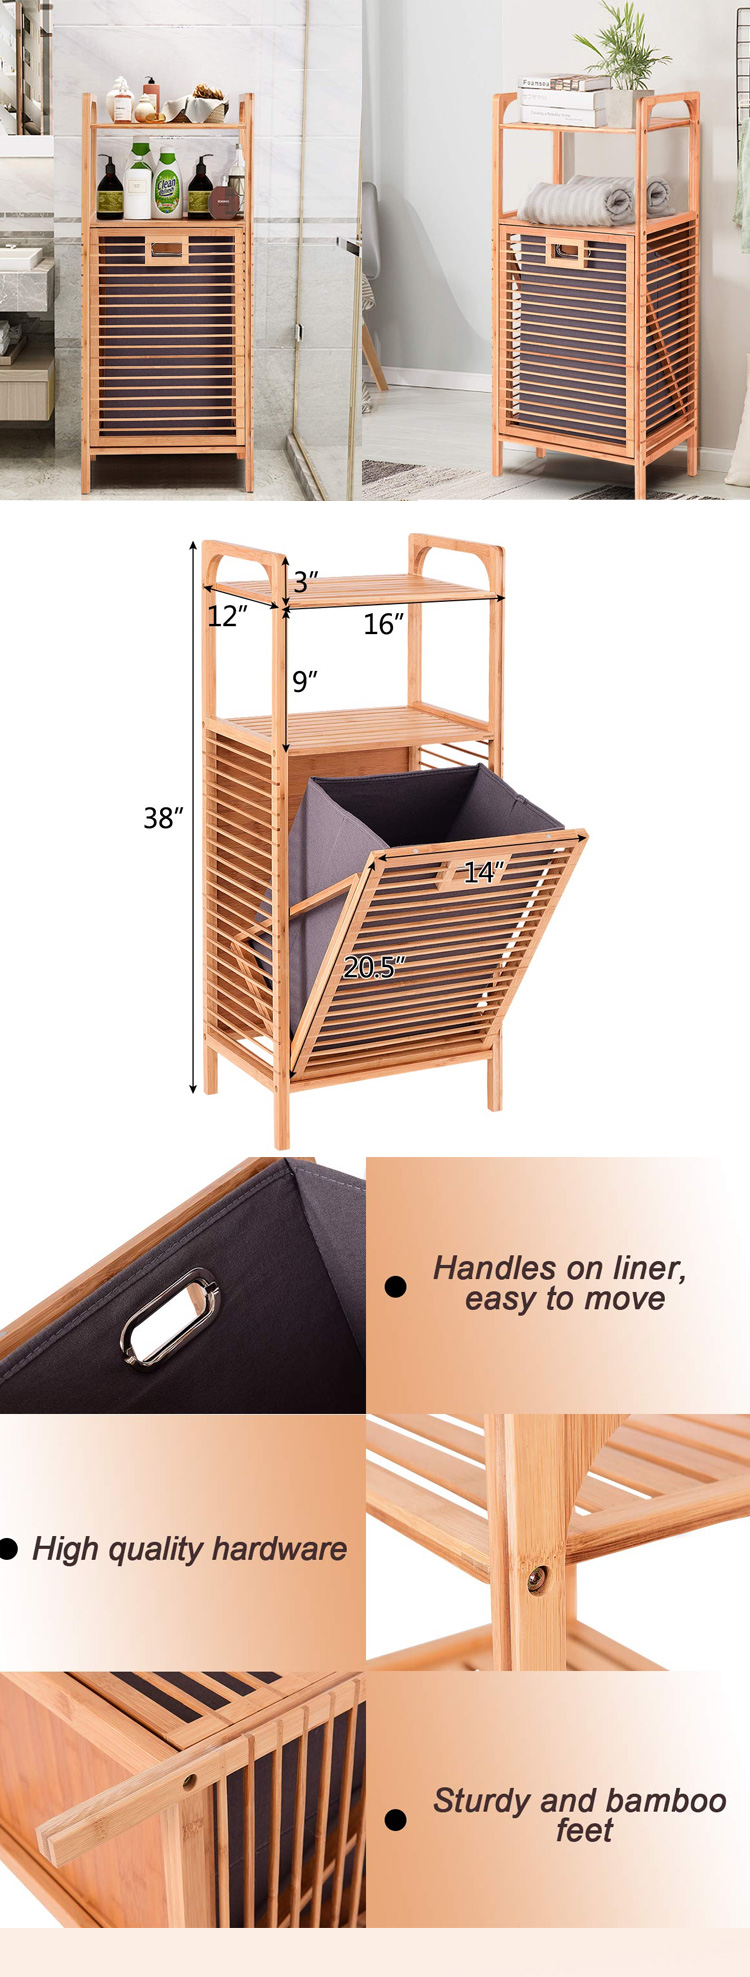 Removable Bamboo Laundry Hamper Slat Frame Space Saving Storage With Shelf